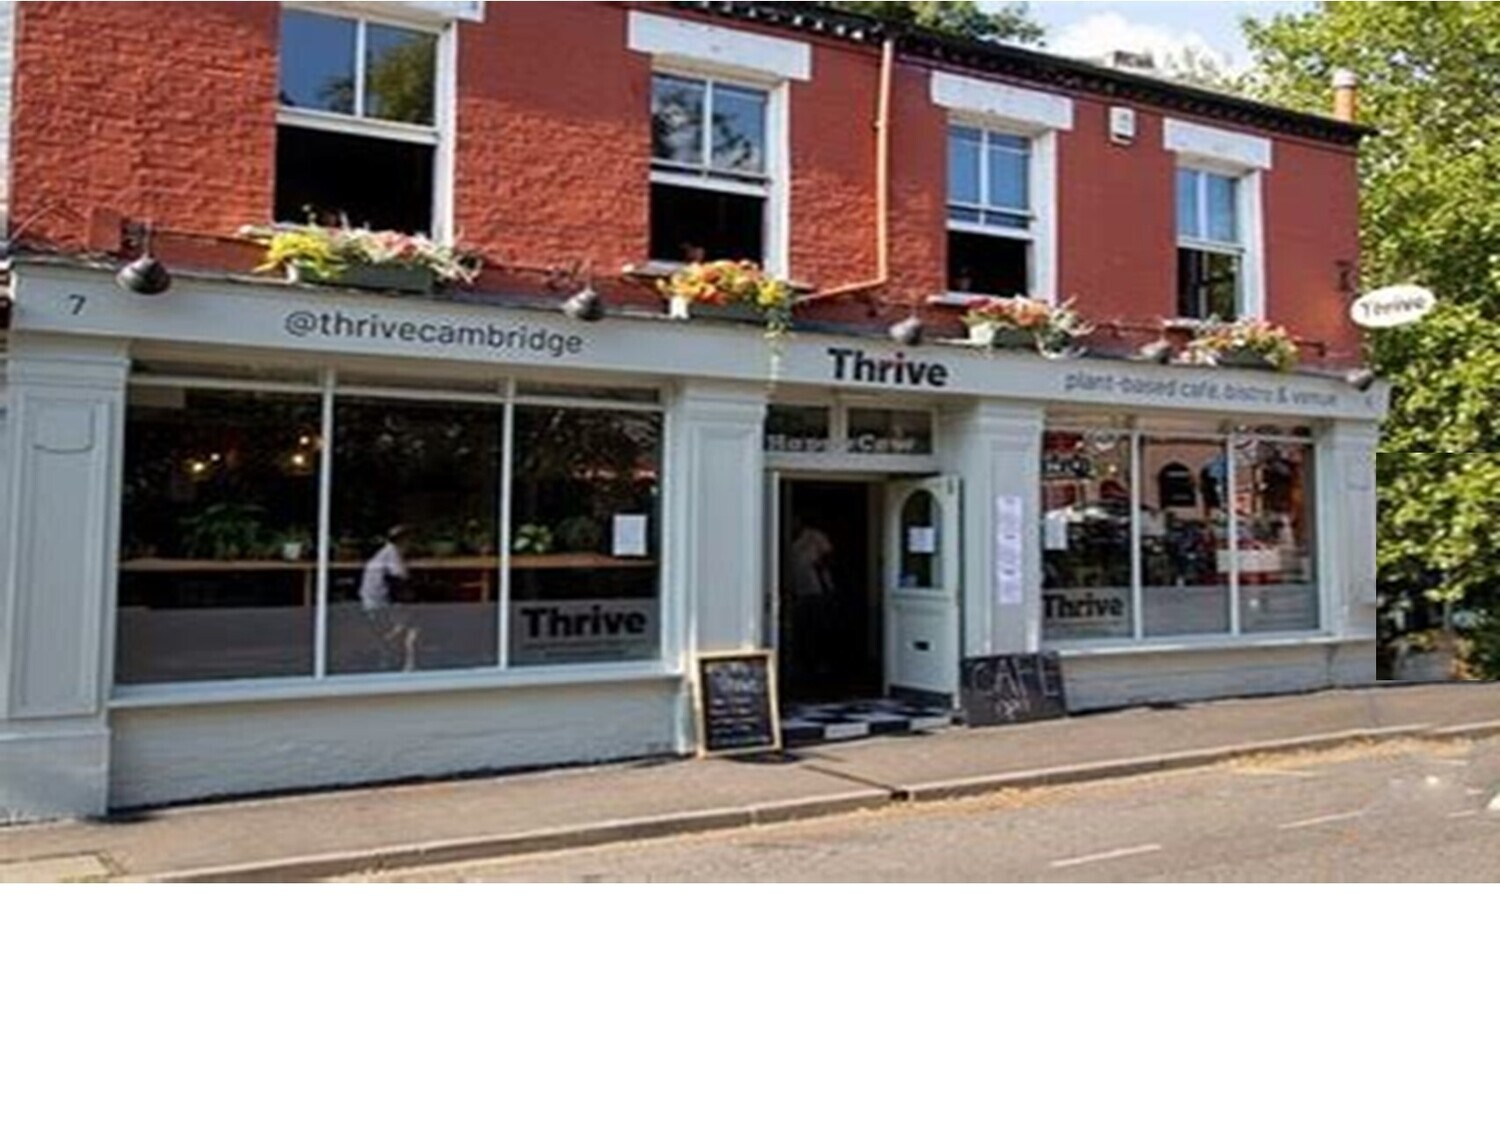 Thrive Cafe and Bistro